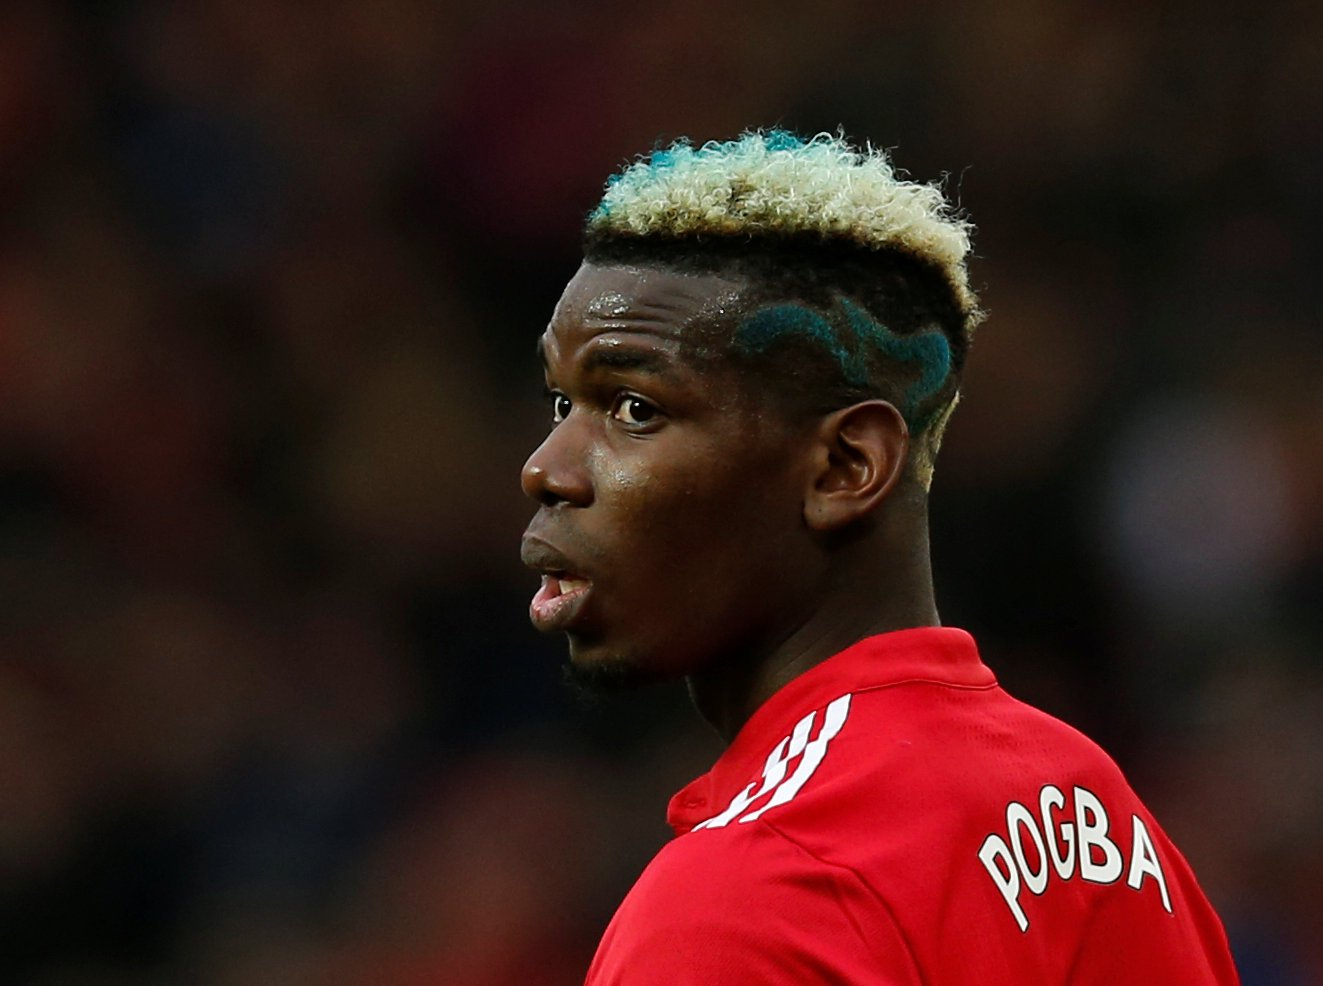 Paul Pogba reacts to Pep Guardiola's incredible claim he was offered to Manchester City in January